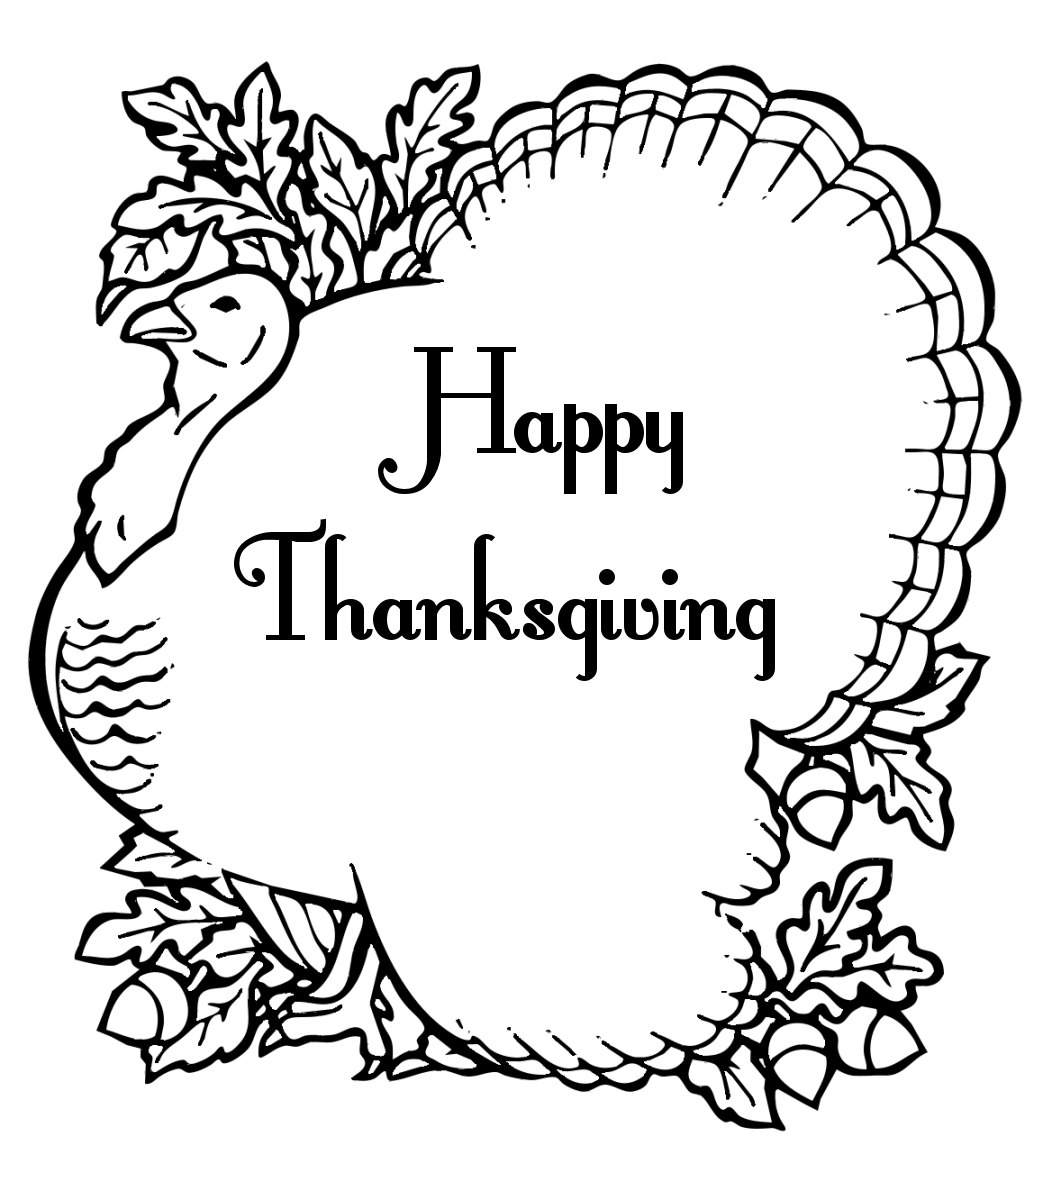 Free printable thanksgiving coloring pages for kids for Christian thanksgiving coloring pages for kids